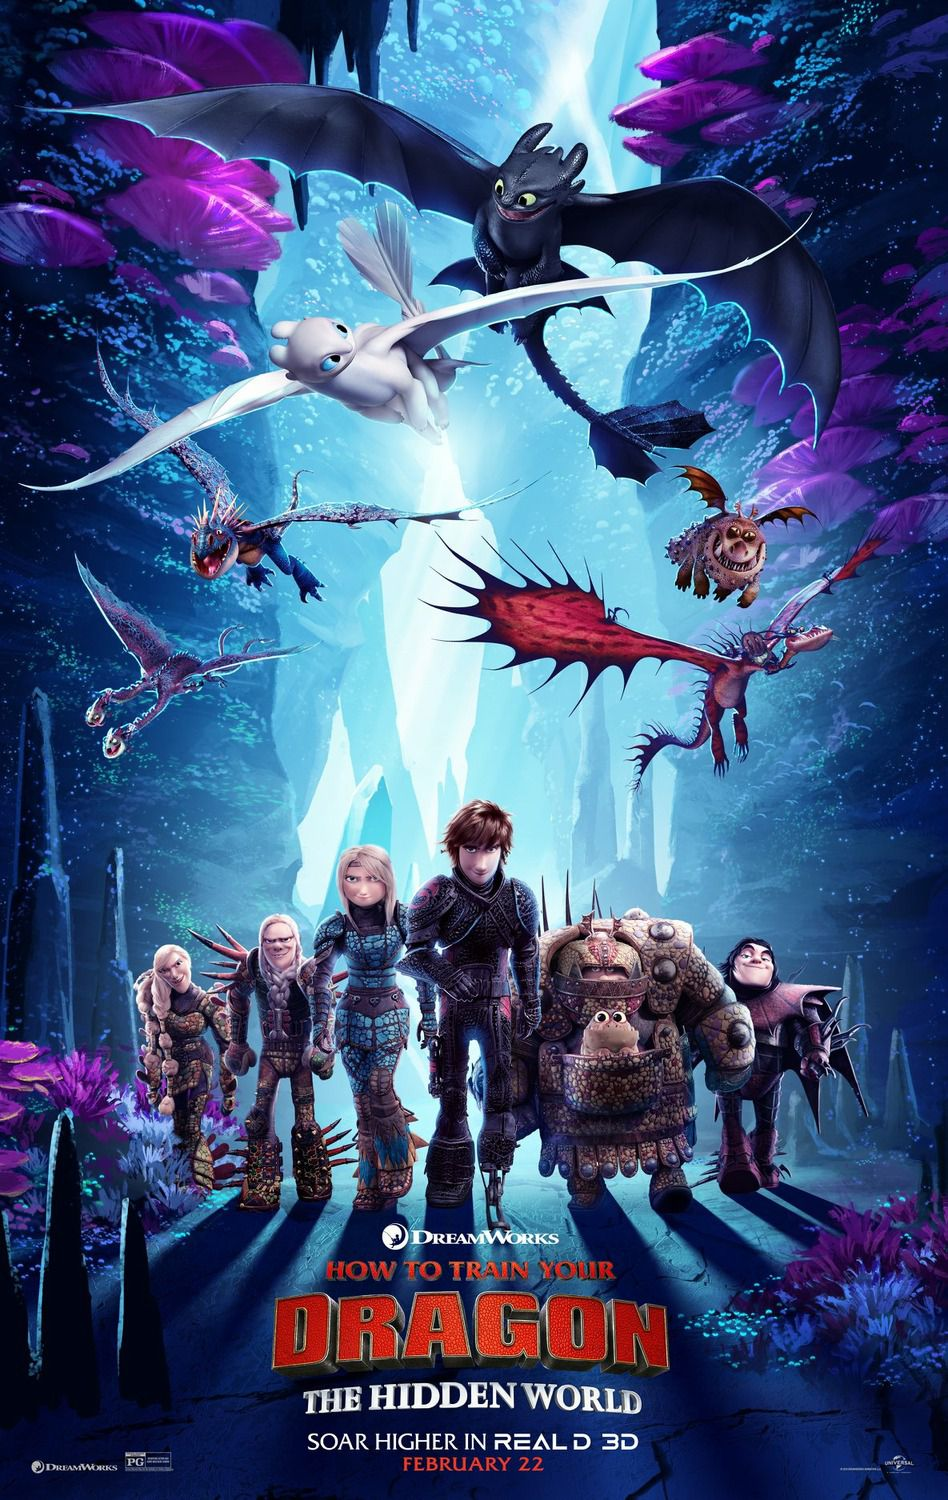 Dragon Trainer 3 - How to Train Your Dragon the Hidden World (2019) posters collection